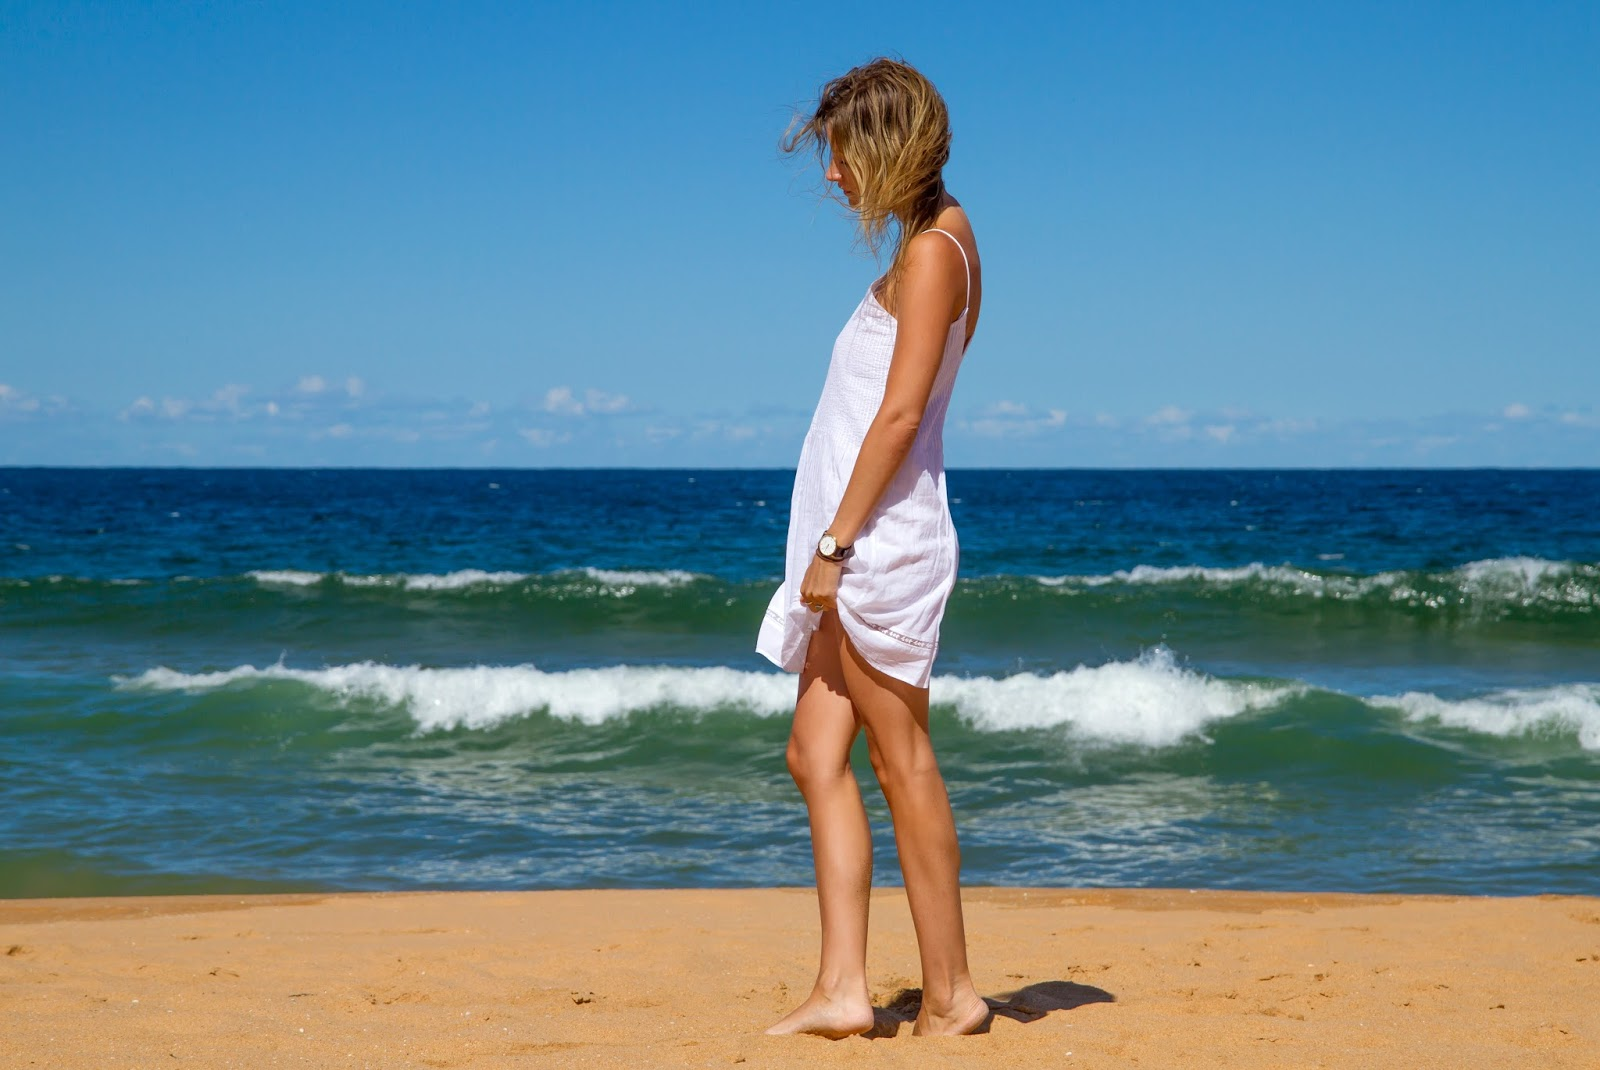 fashion and travel blogger, alison hutchinson from Styling My Life is playing in the waves at Palm Beach in Sydney, Aystralia in a white Zara sundress.